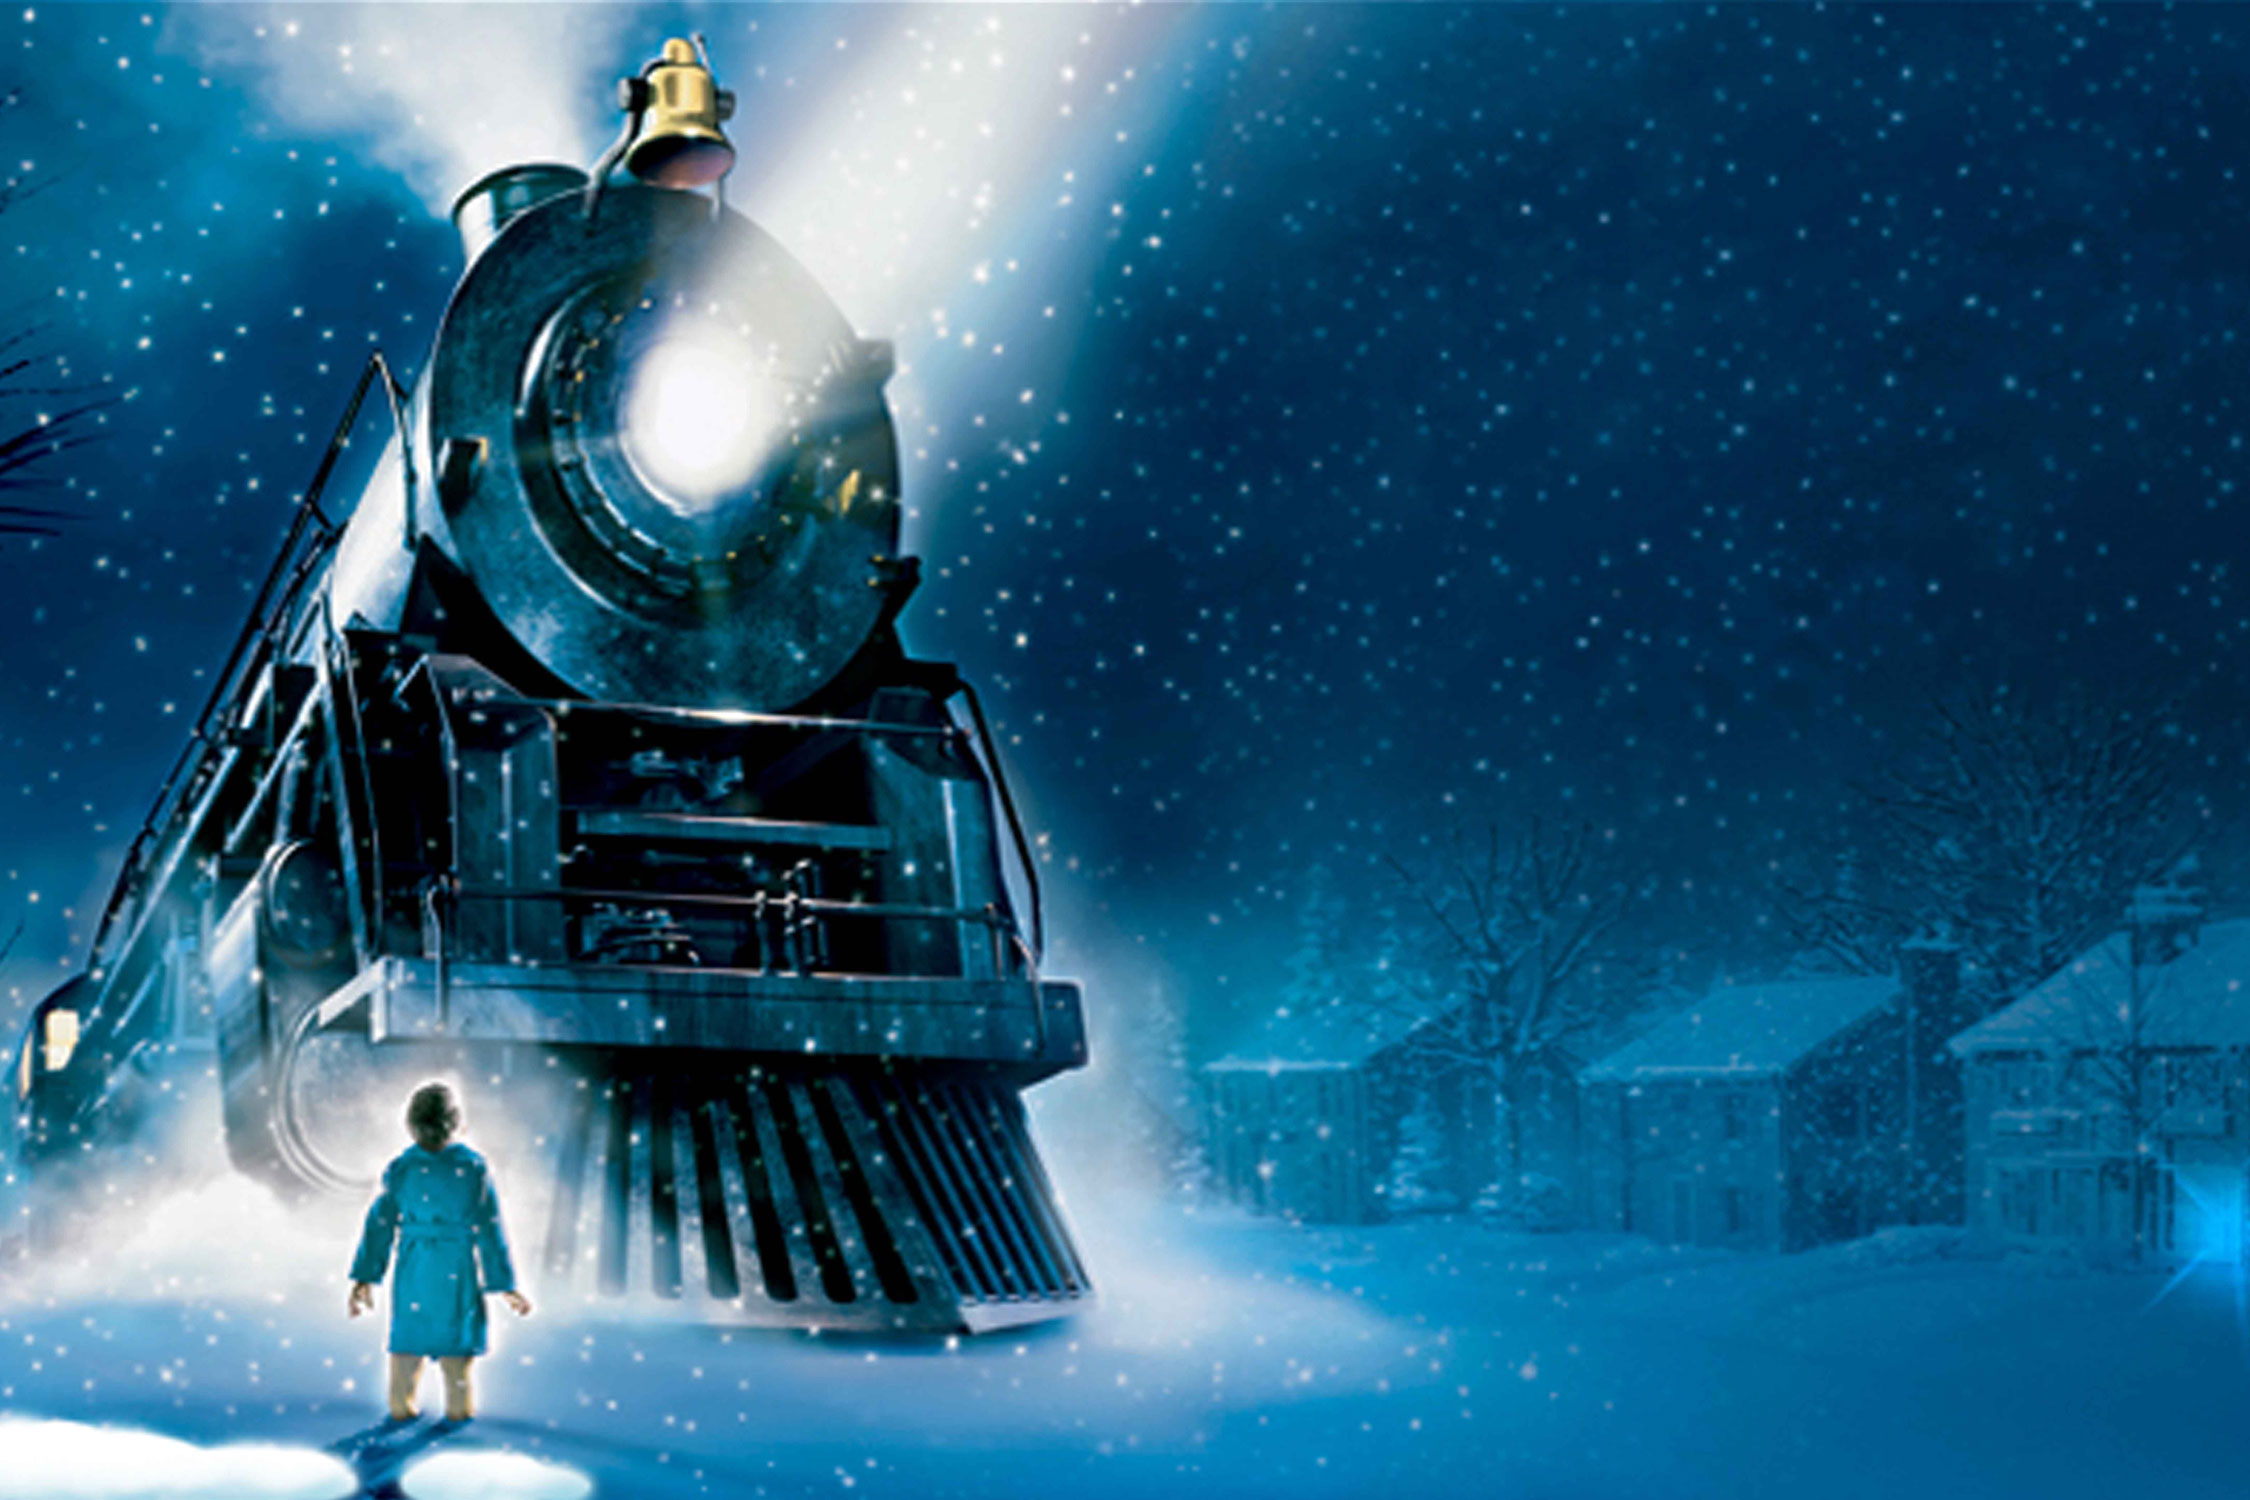 press image from The Polar Express